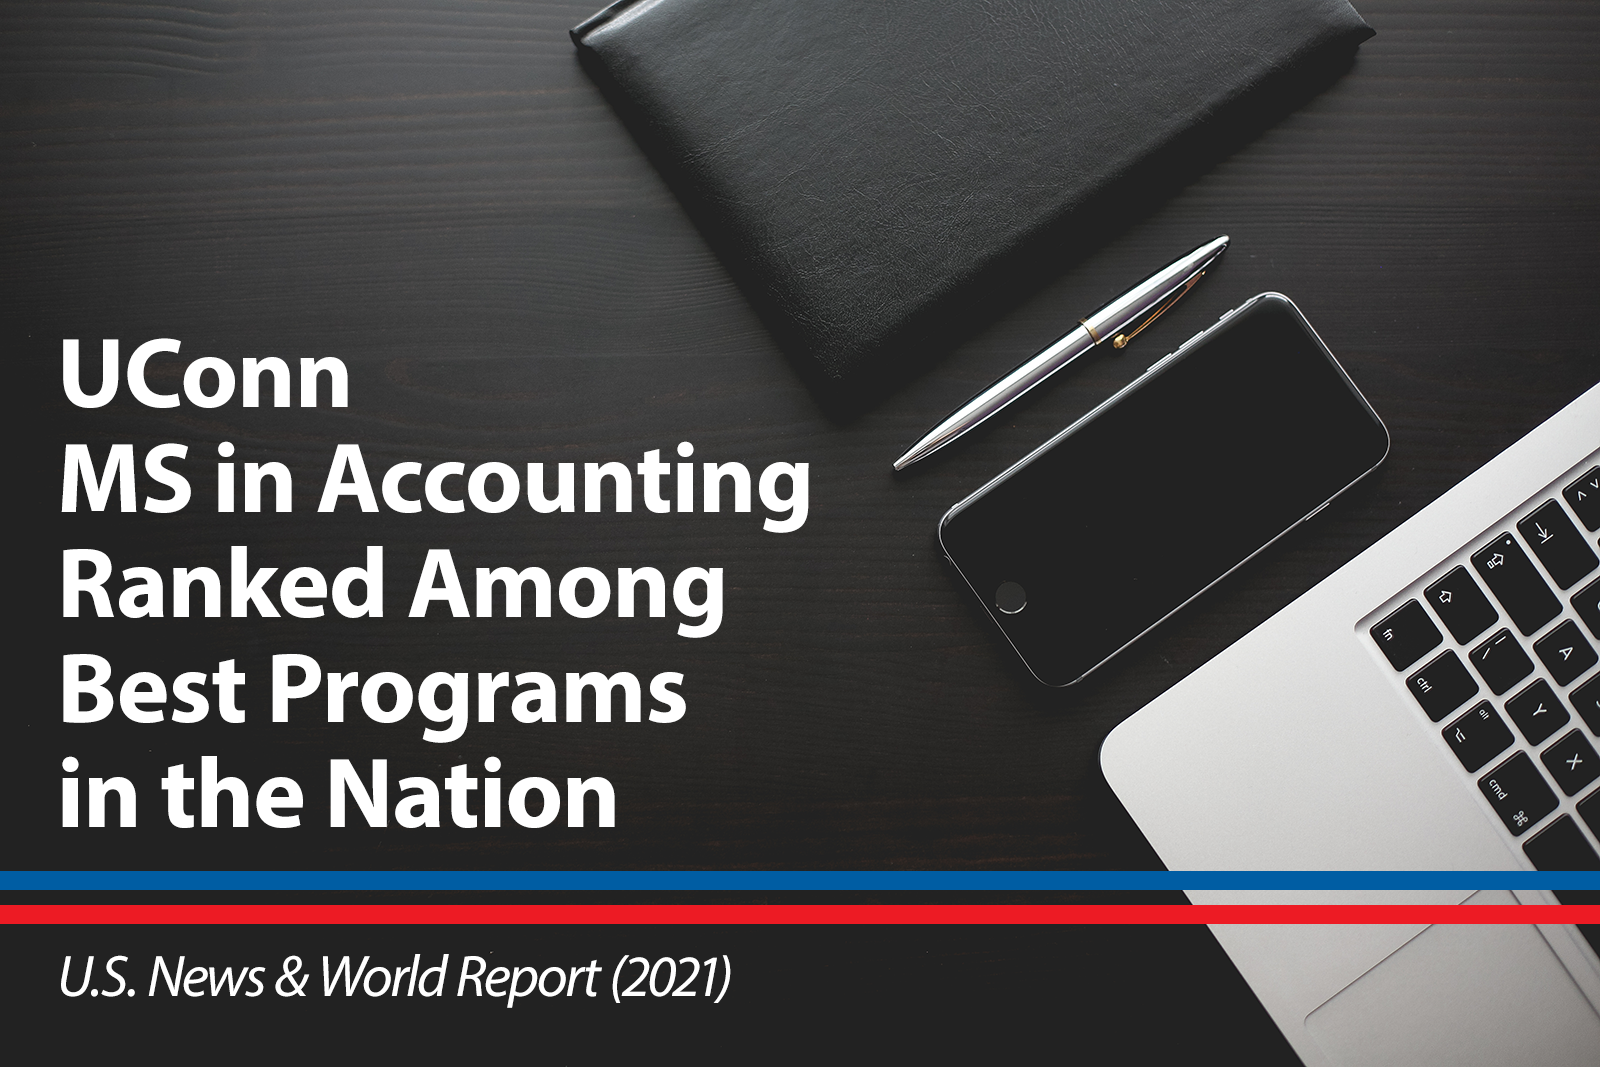 UConn Master of Science in Accounting ranked among the best programs in the nation by U.S. News and World Report 2021